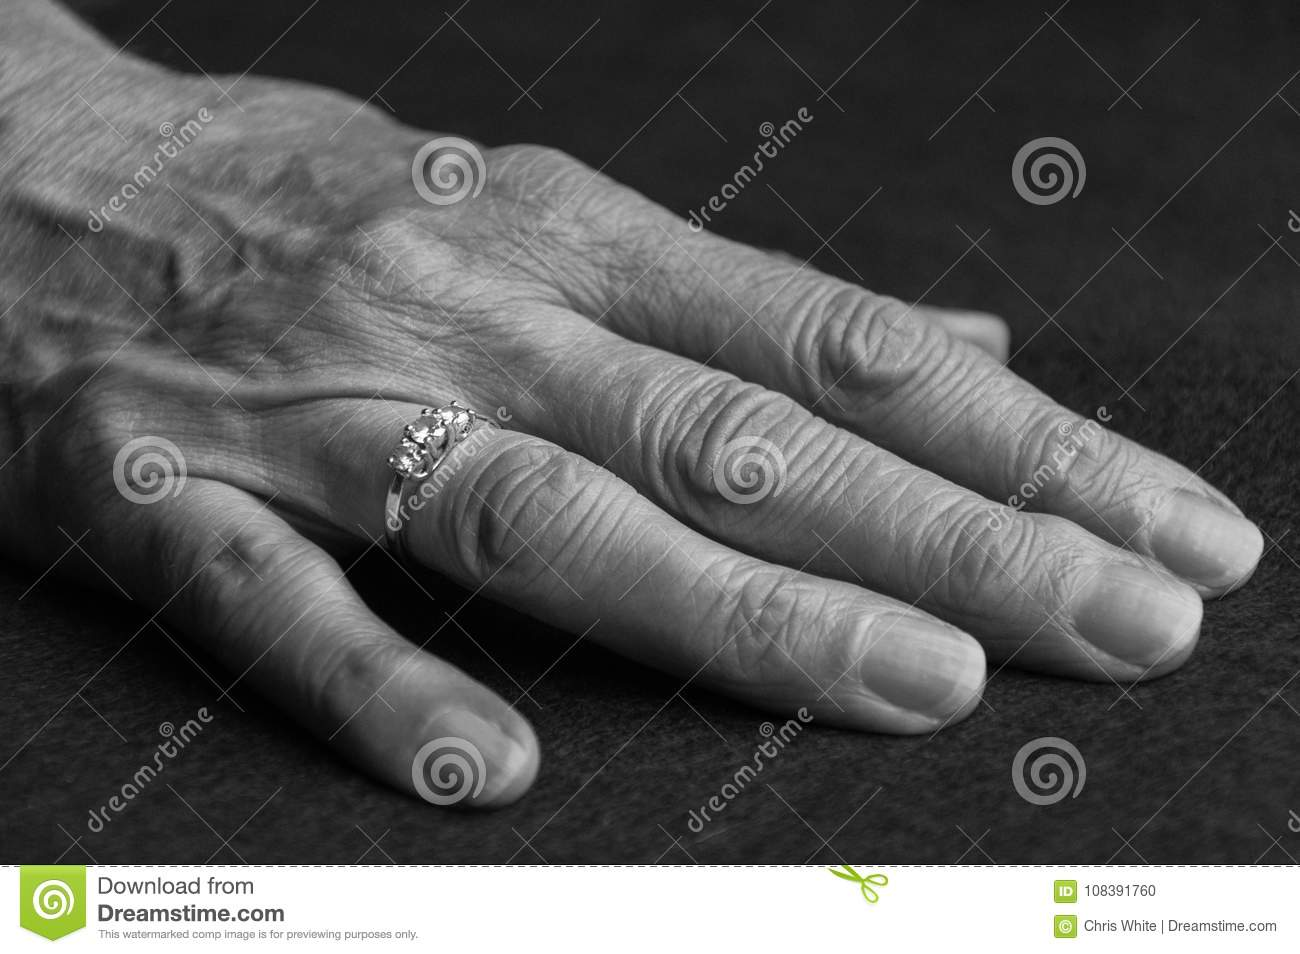 An old hand with a ring on one finger